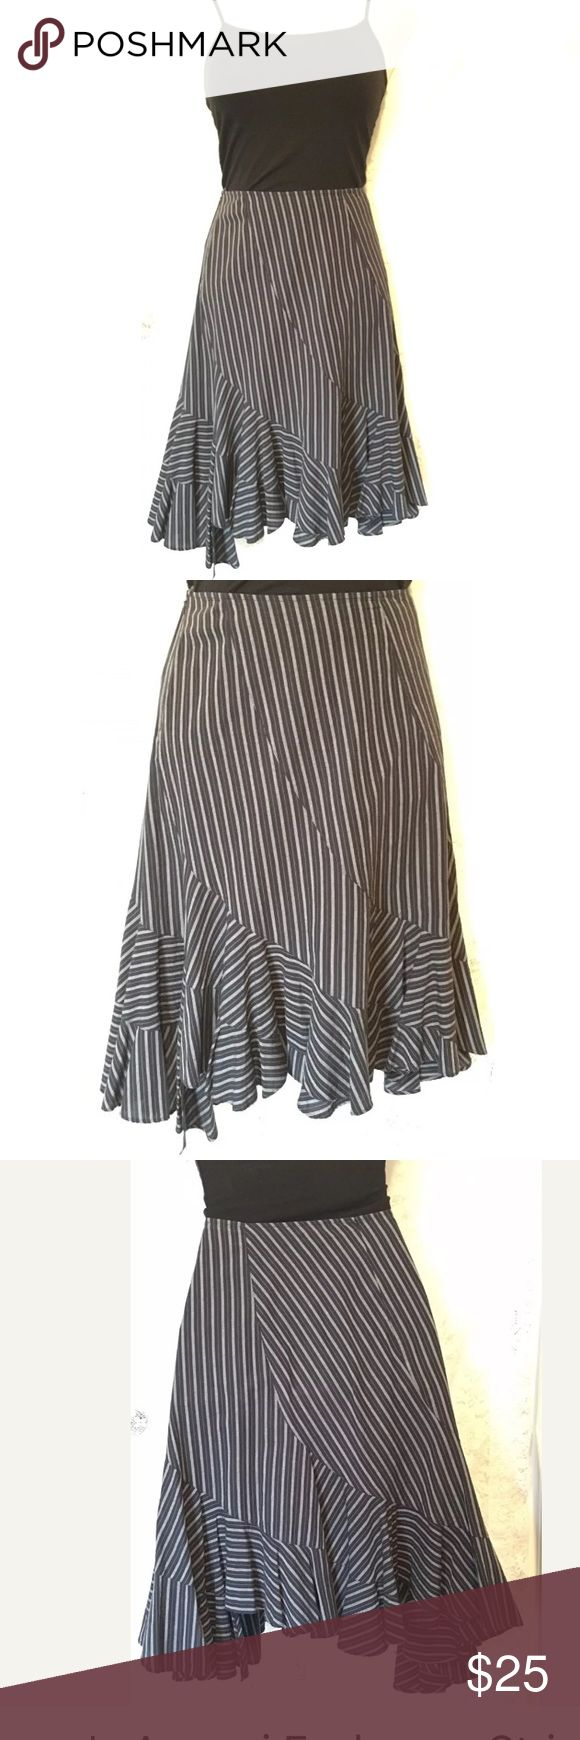 """Armani Exchange Striped Blk & White Ruffle Skirt Women's Armani Exchange Striped Black And White Ruffle Skirt  Size 6 Measurements: Waist: 30"""" Hips: 38-40"""" Length: 23.5"""" Condition: Excellent  This beautiful skirt is made from 100% cotton, and zips up on the side. The bottom of the skirt is designed slightly asymmetrical, with ruffles.  Thank you for considering this item! A/X Armani Exchange Skirts Asymmetrical"""